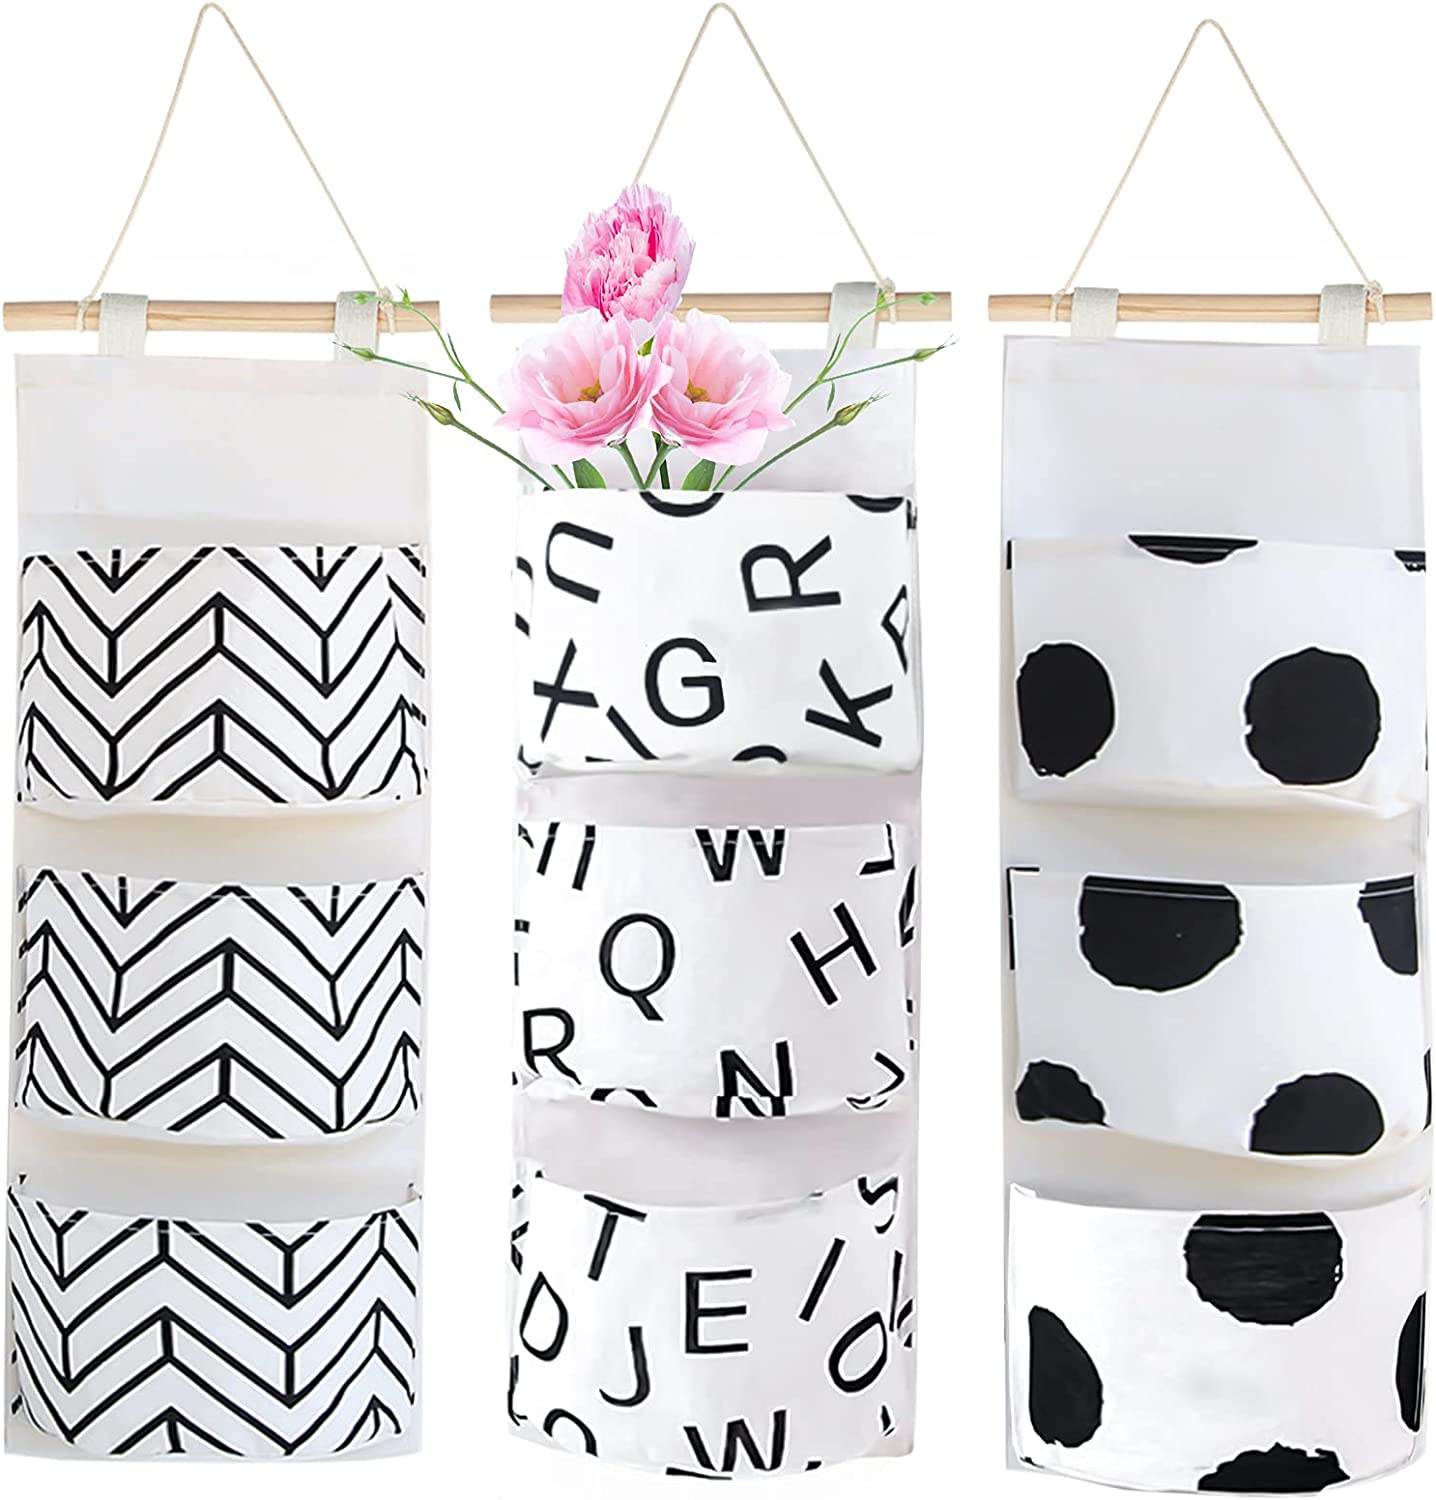 3Pcs Wall Closet Hanging Storage Discount mail order Waterproof Linen Over Bag The Direct sale of manufacturer